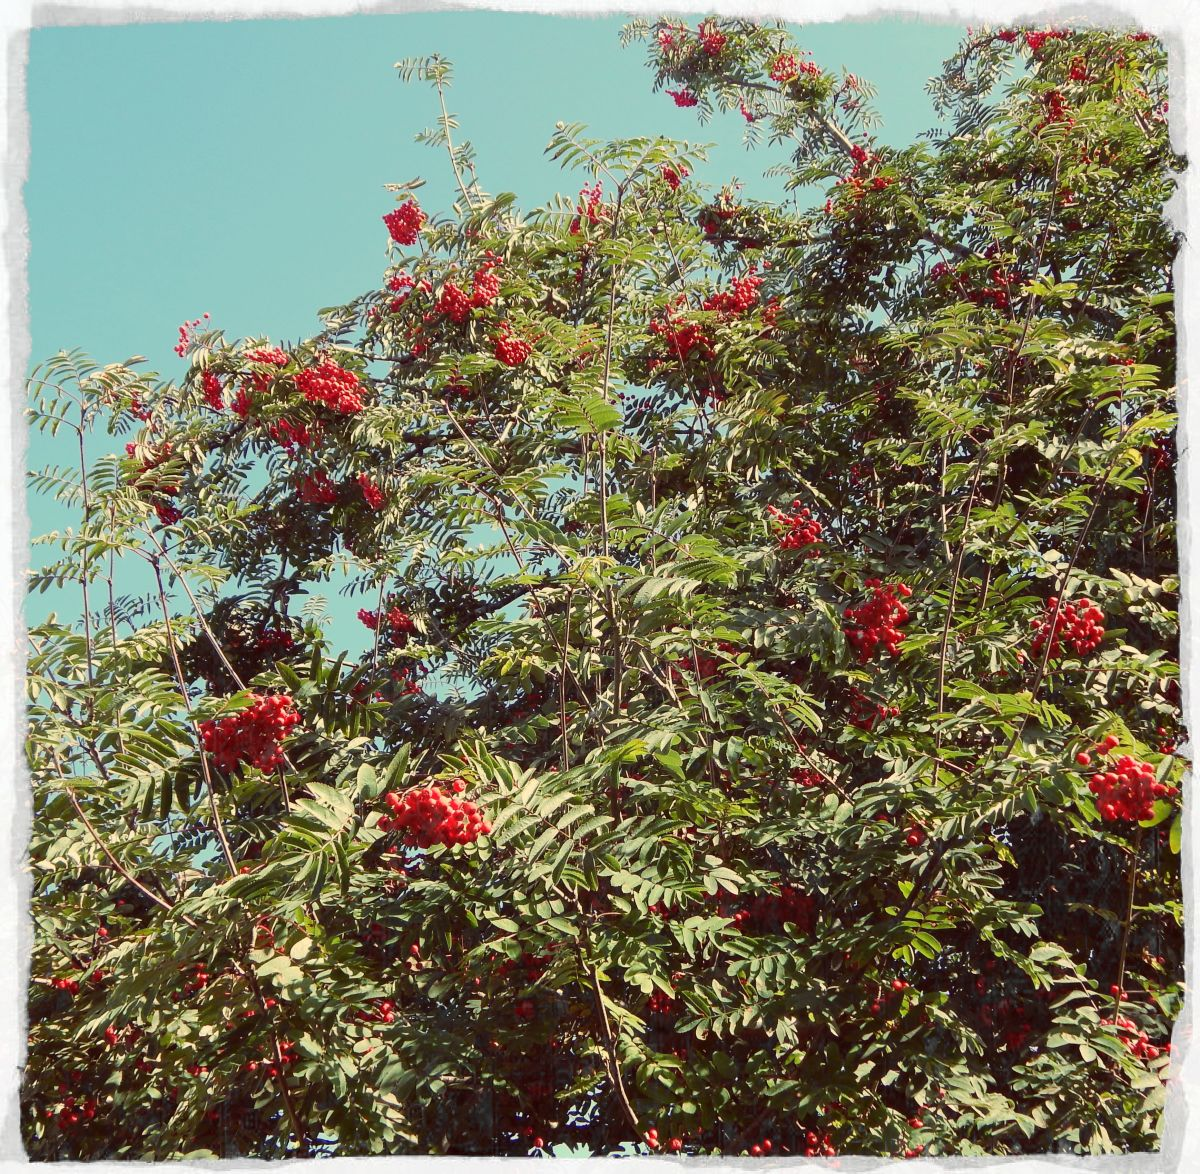 The rowan tree is believed to have protective virtues.